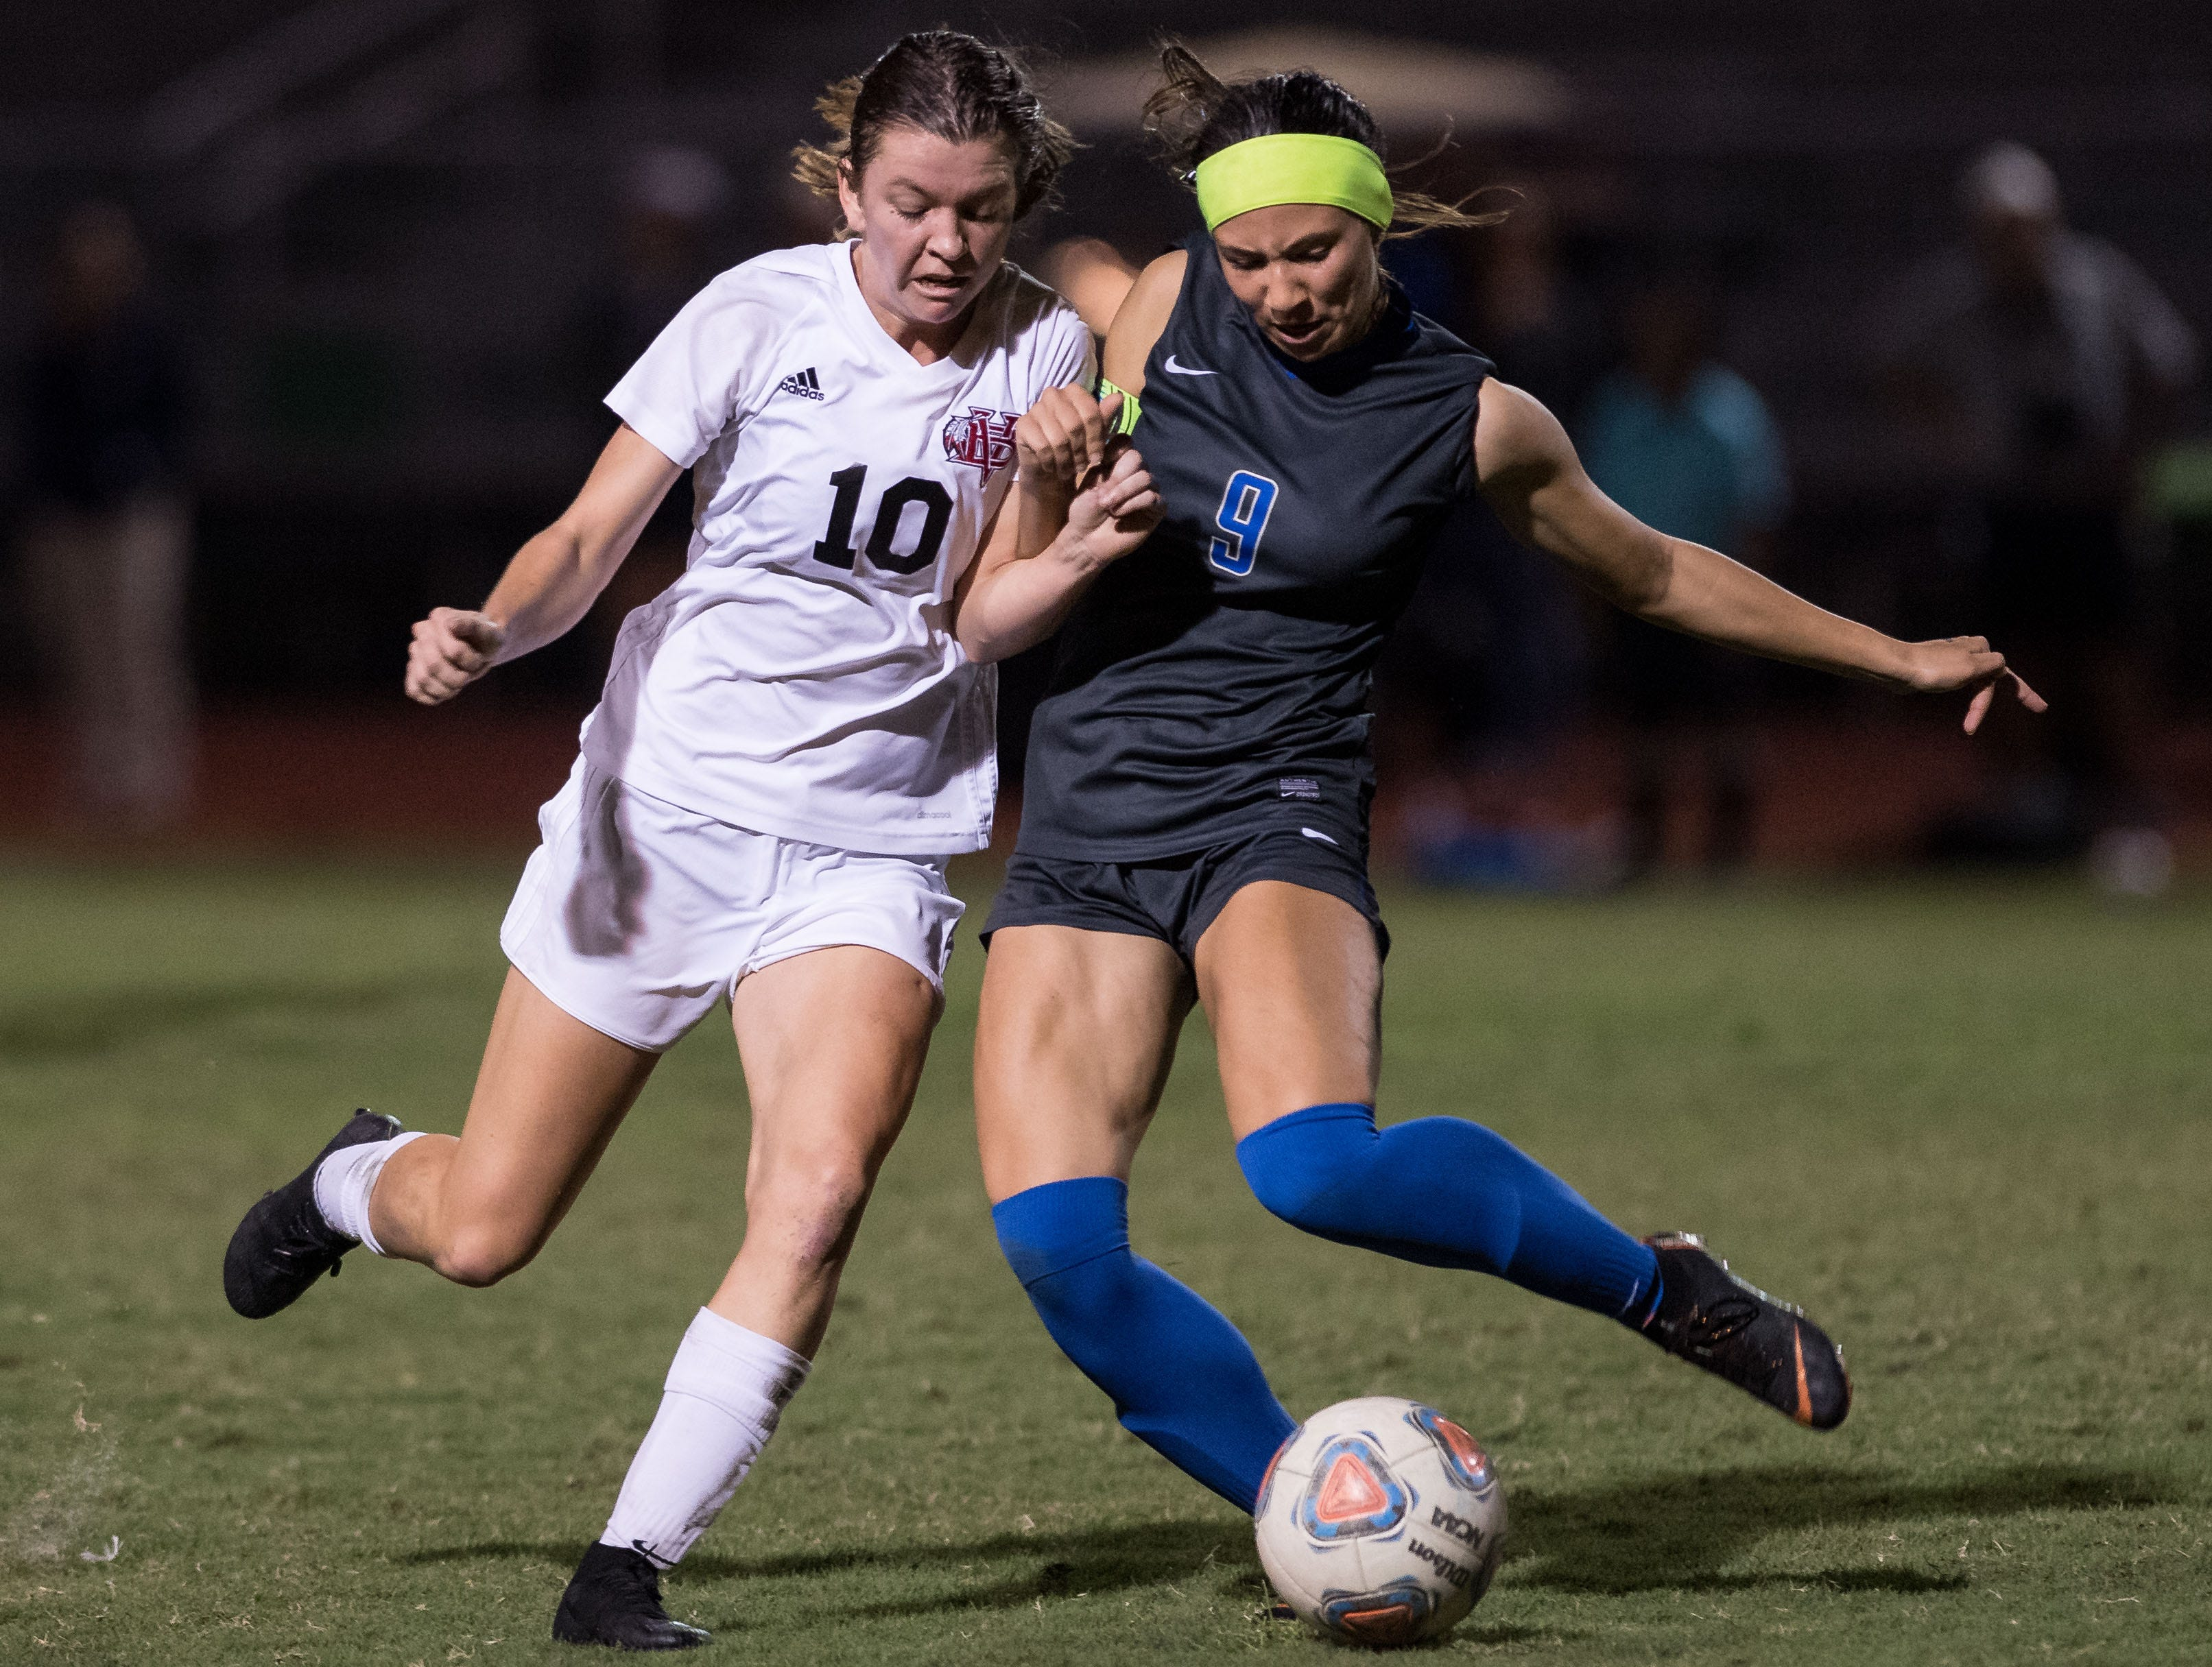 Vero Beach's Madelaine Rhodes (left) tries to drive to the goal past Cypress Bay's Alexandra Goffi during the second half of the high school girls soccer Class 5A state semifinal game Friday, Feb. 15, 2019, at Cypress Bay High School in Weston.